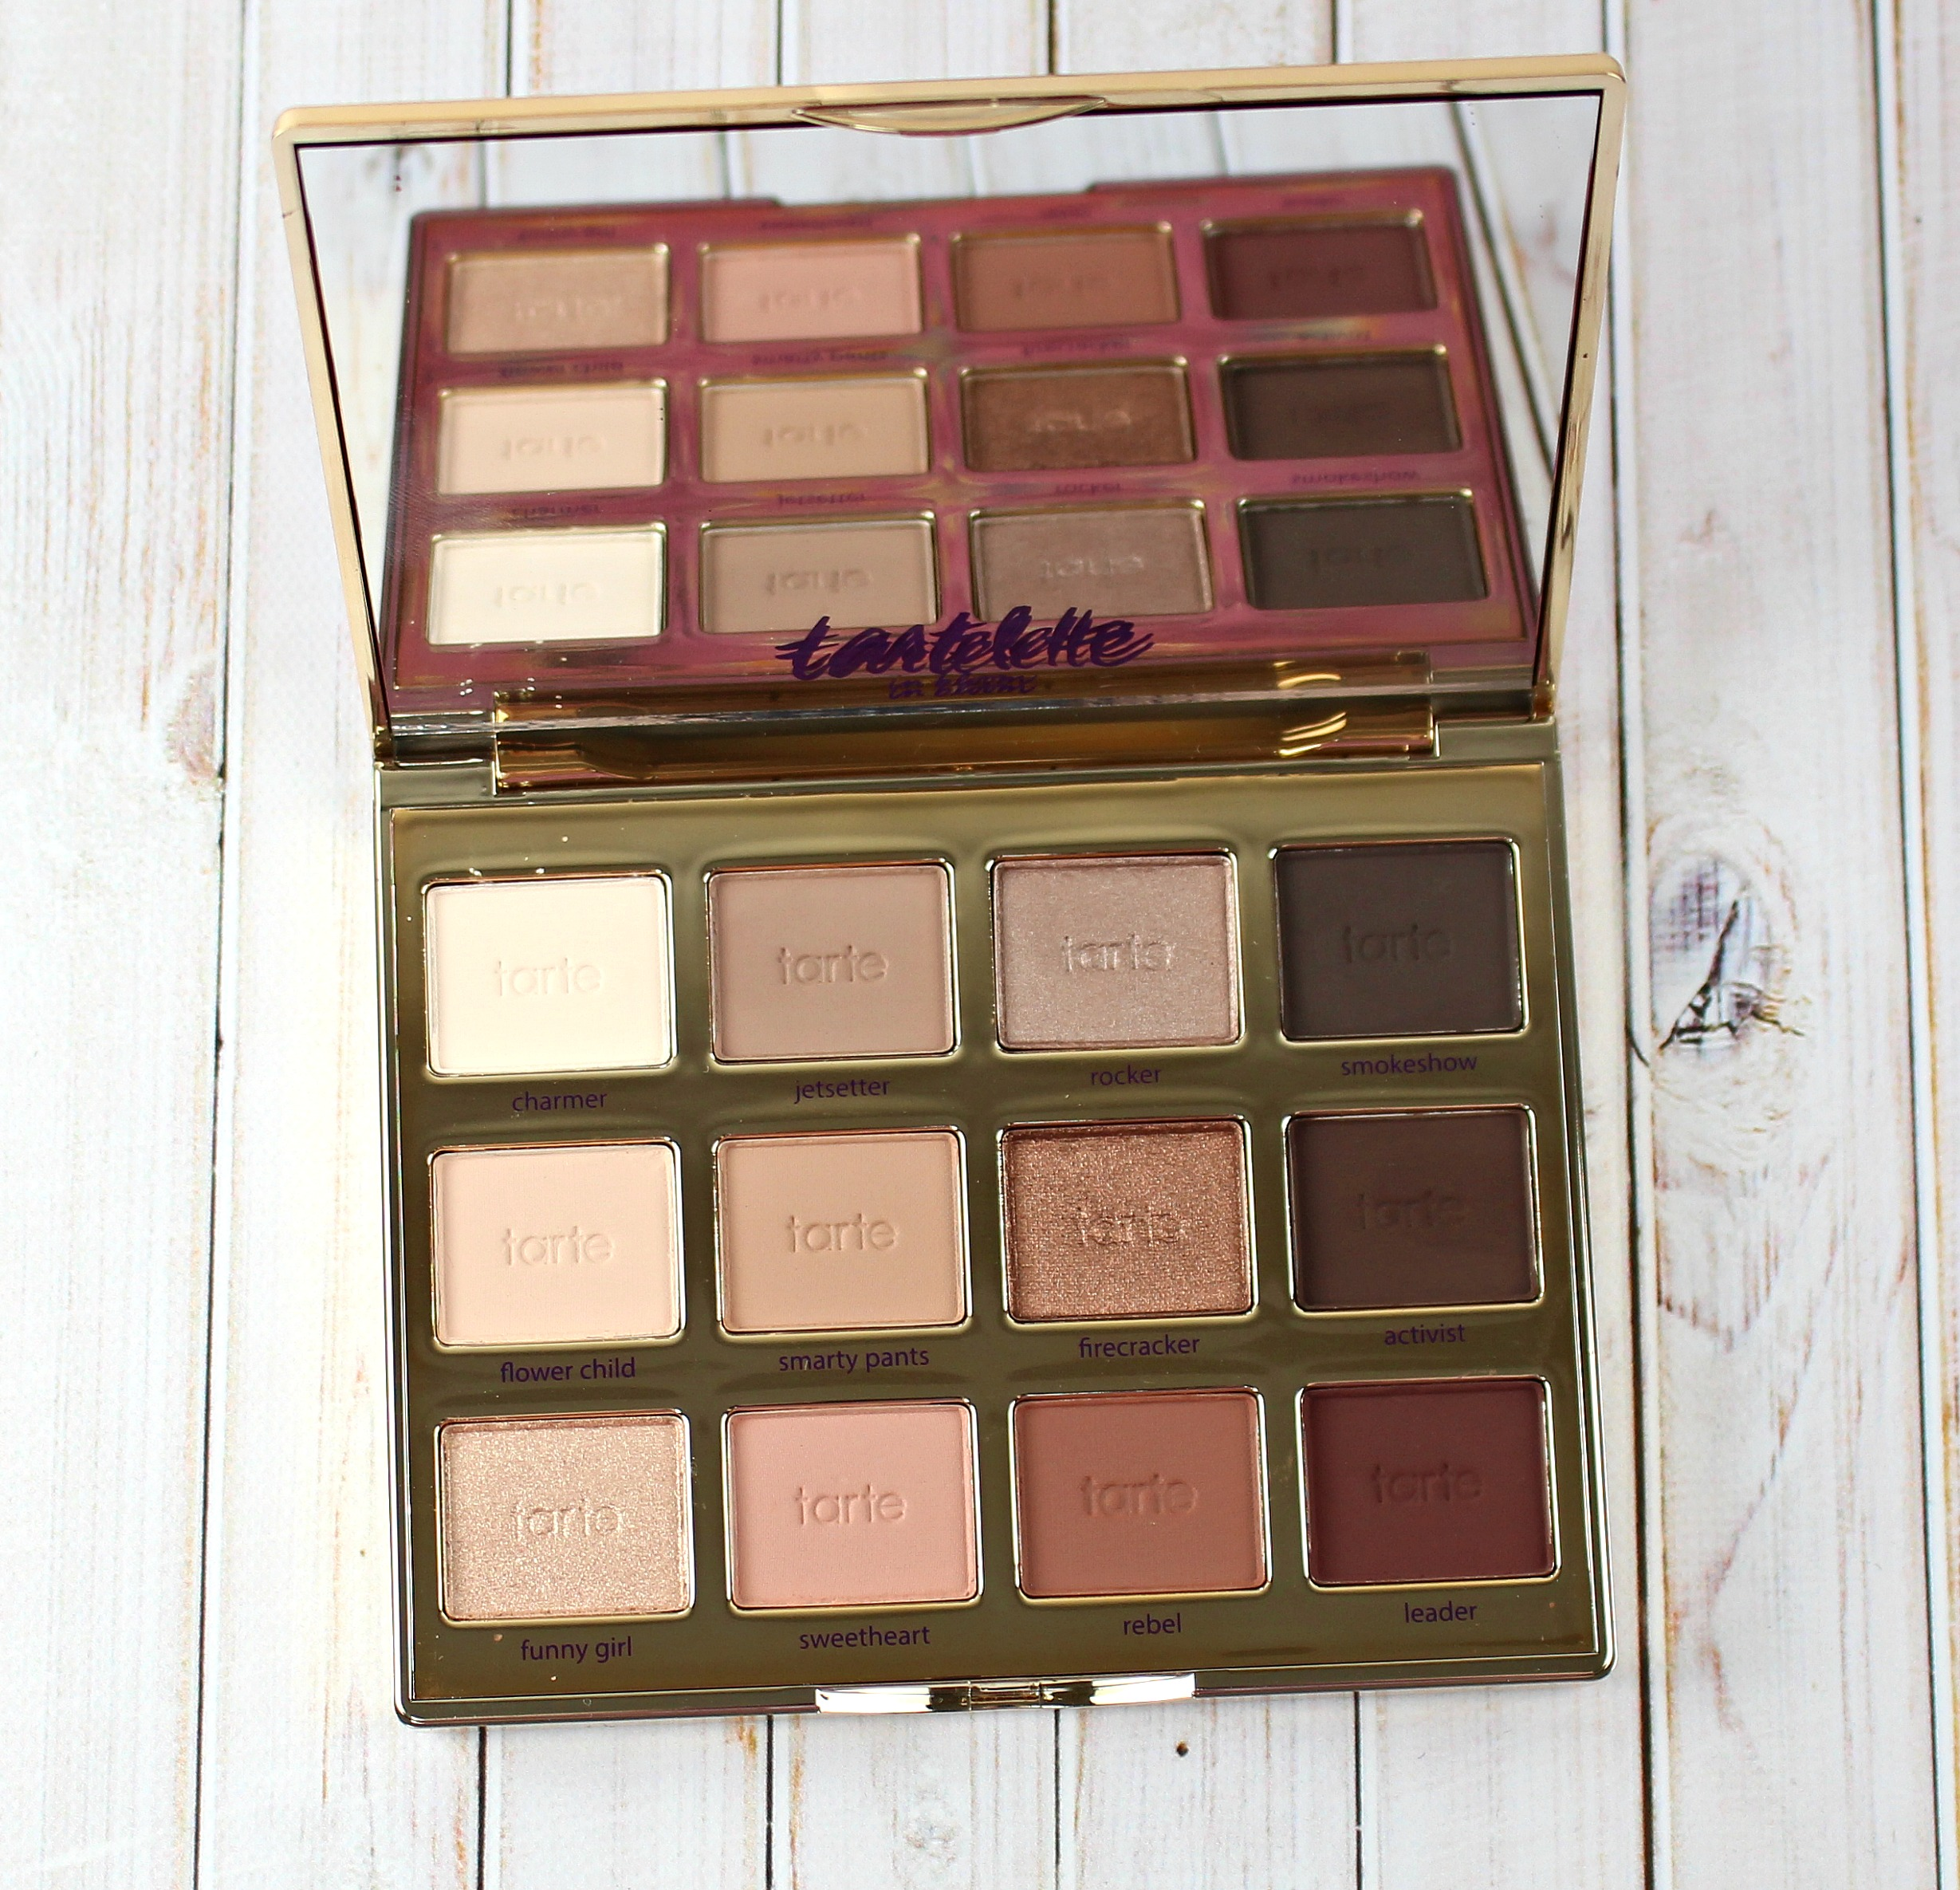 tartelette in bloom clay palette review